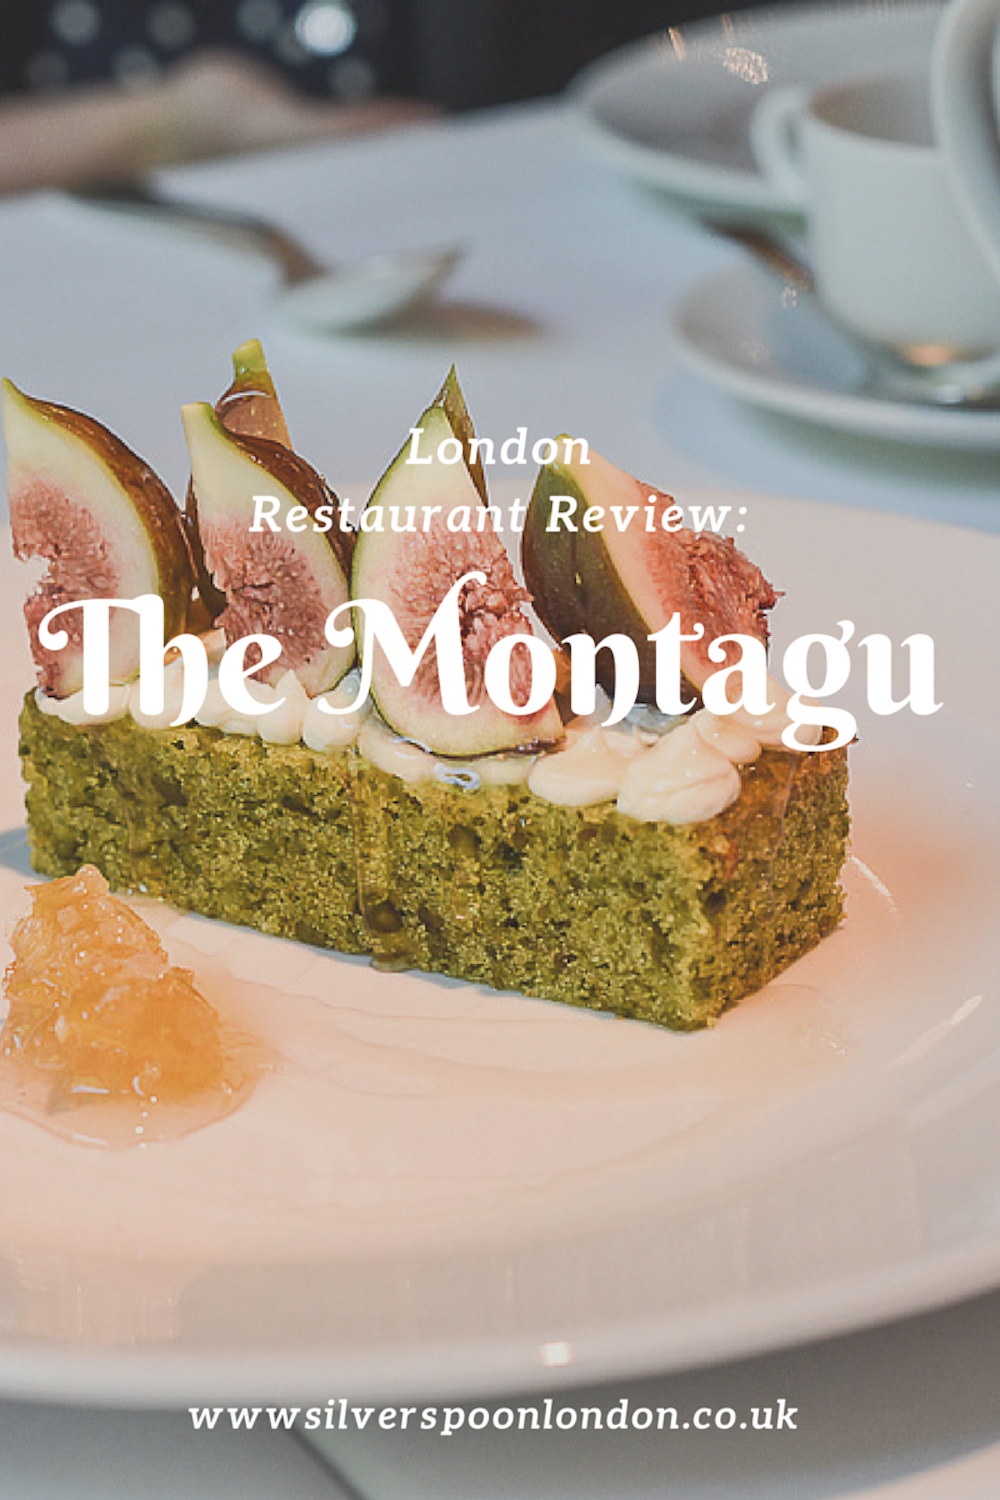 London Restaurant Review: The Monagu